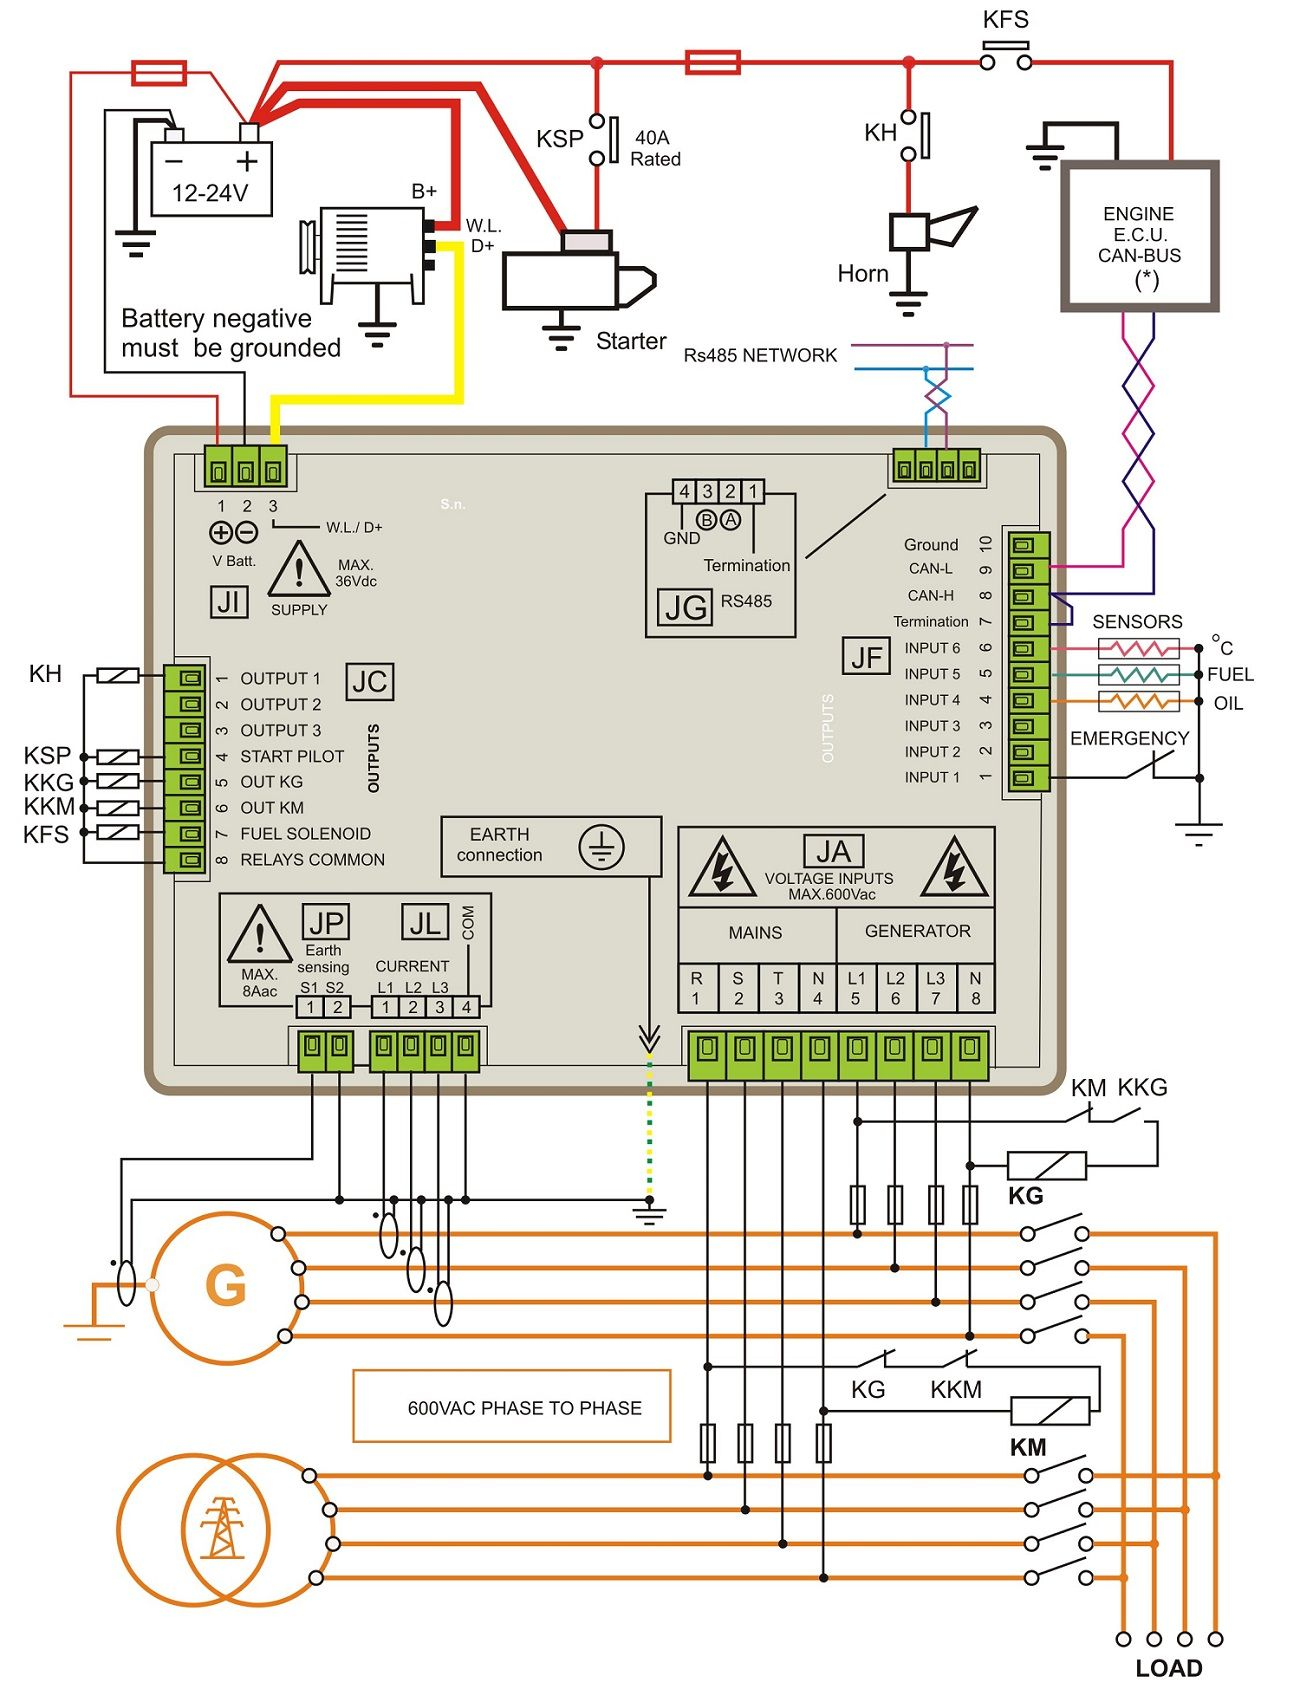 small resolution of rh2b u relay wiring diagram electrical wiring diagram rh2b u relay wiring diagram